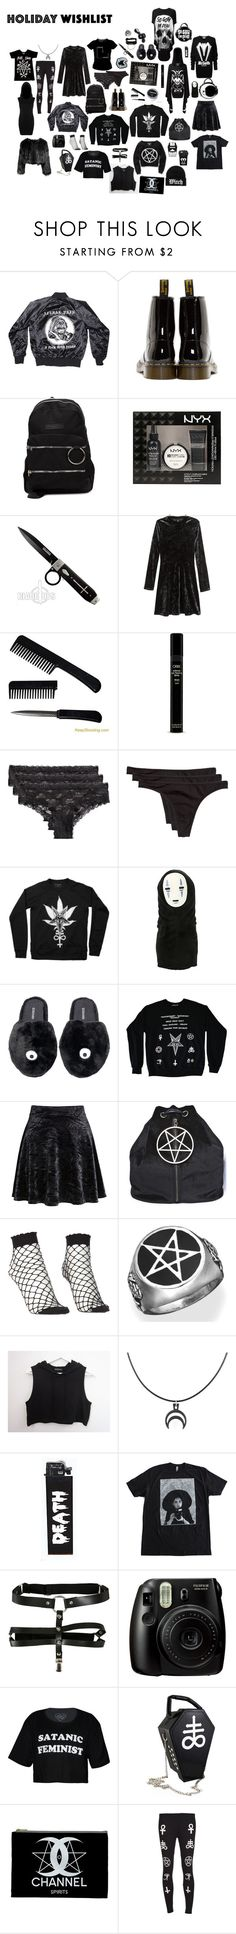 """Untitled #383"" by void-witch ❤ liked on Polyvore featuring Actual Pain, Dr. Martens, UNIF, H&M, Oribe, Ghibli, Dolly Bae, Pamela Mann, Fujifilm and Disturbia"